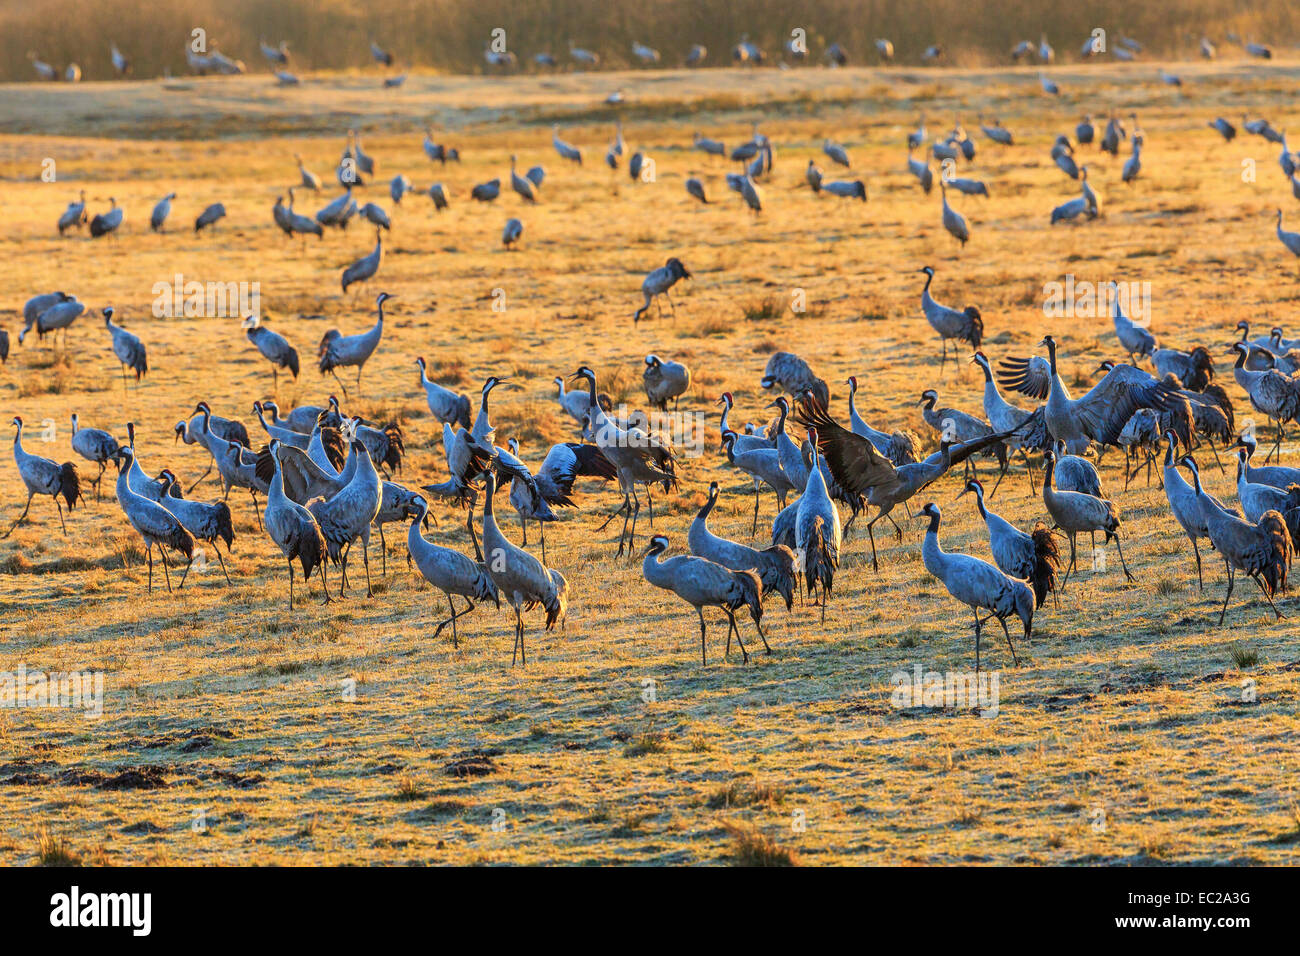 Flock of cranes grazing on a field - Stock Image